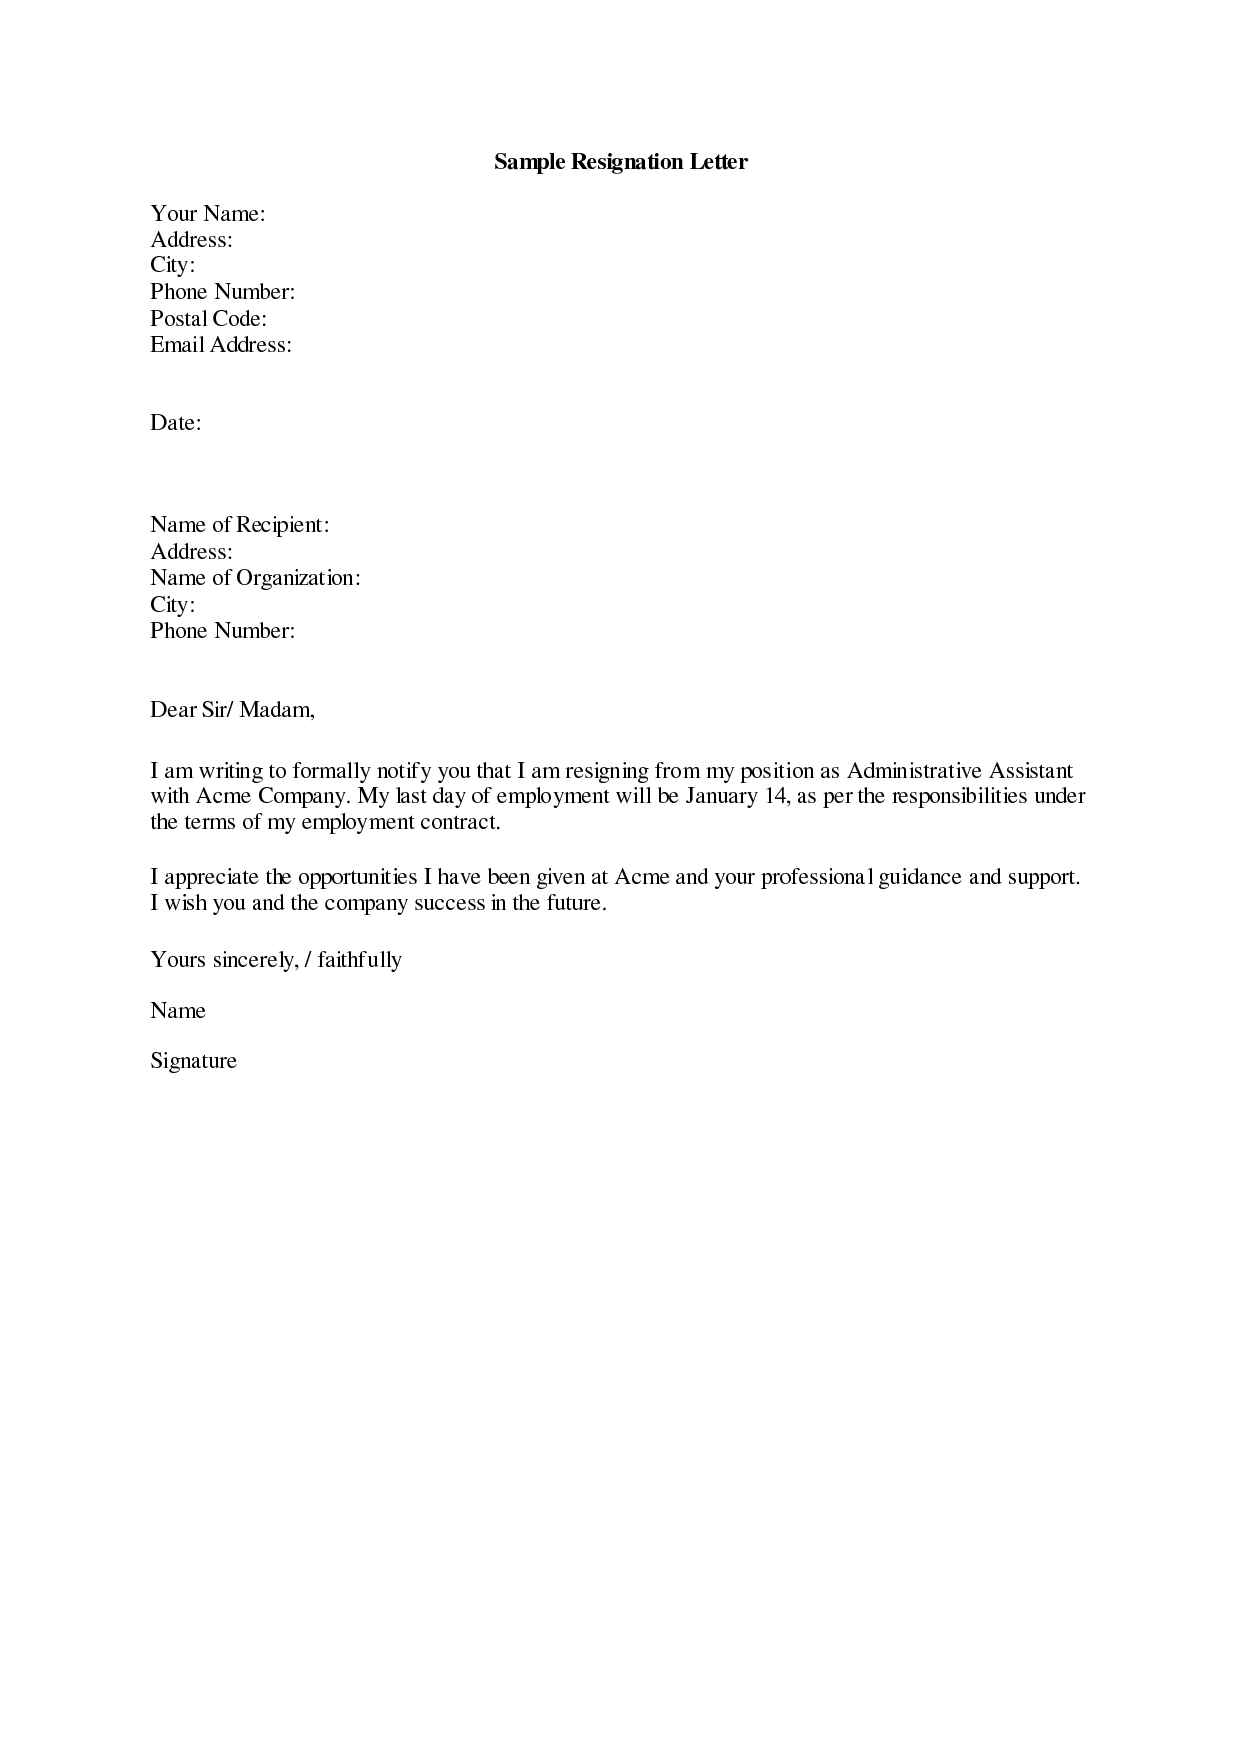 Standard Resignation Letter Template Word - Resignation Letter Sample 19 Letter Of Resignation